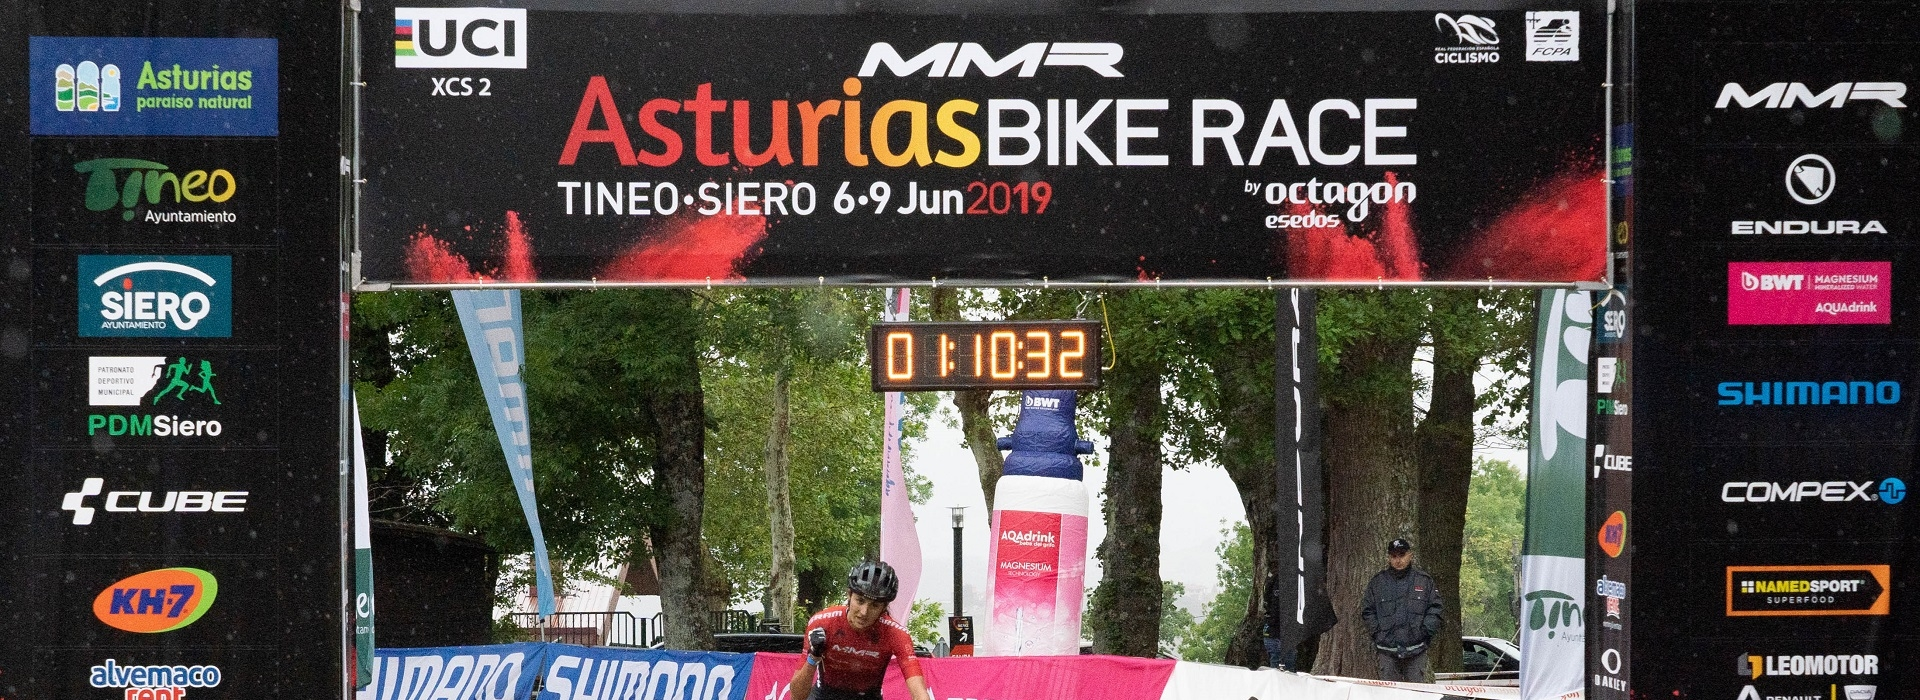 Champion and Fischer command the win in the Tineo Flash Stage